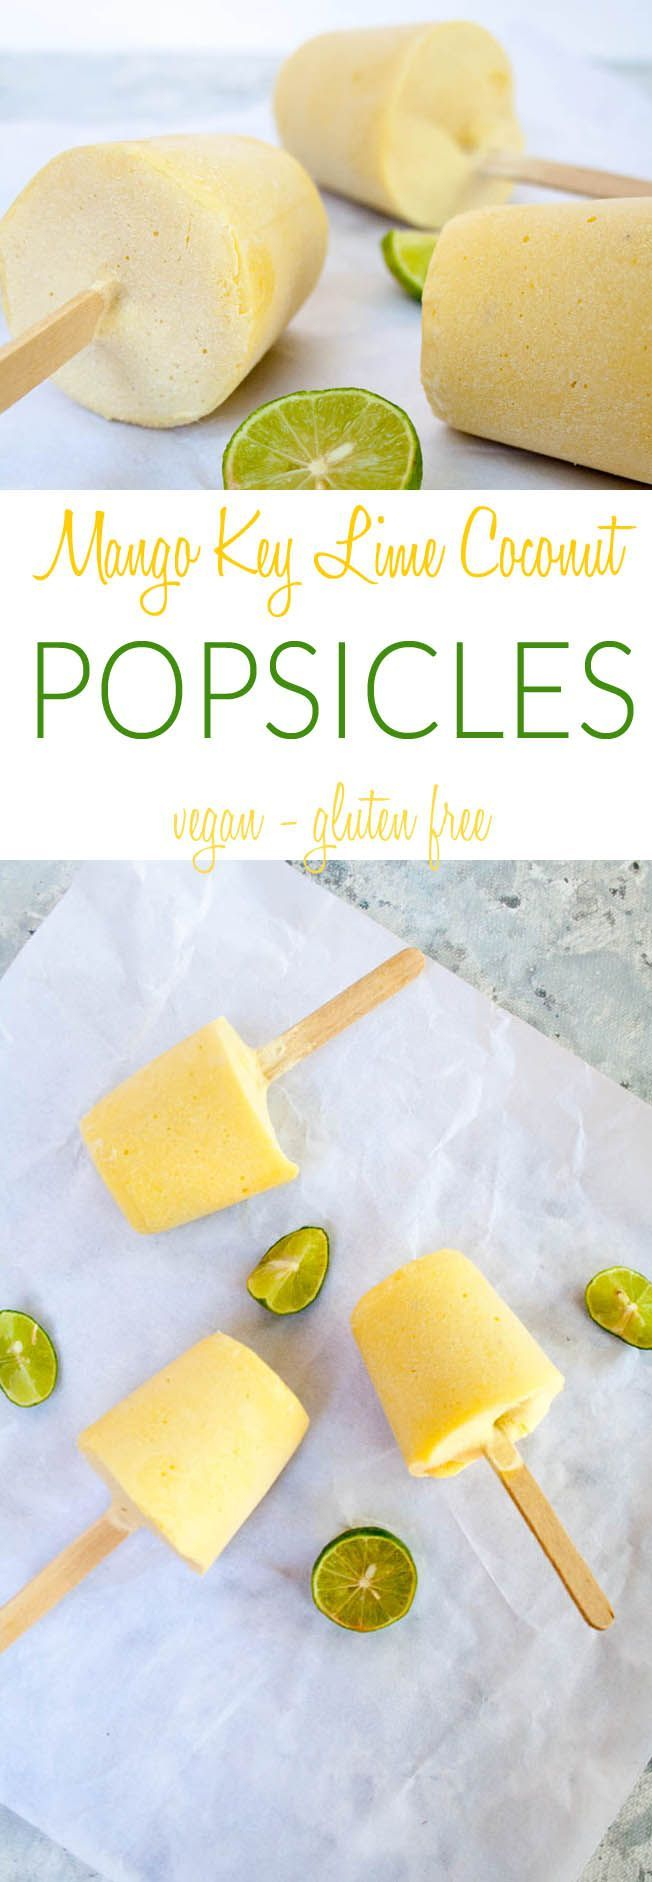 Mango Key Lime Coconut Popsicles (vegan, gluten free) - These cool treats have tropical flavors that are sure to please! No special equipment needed!